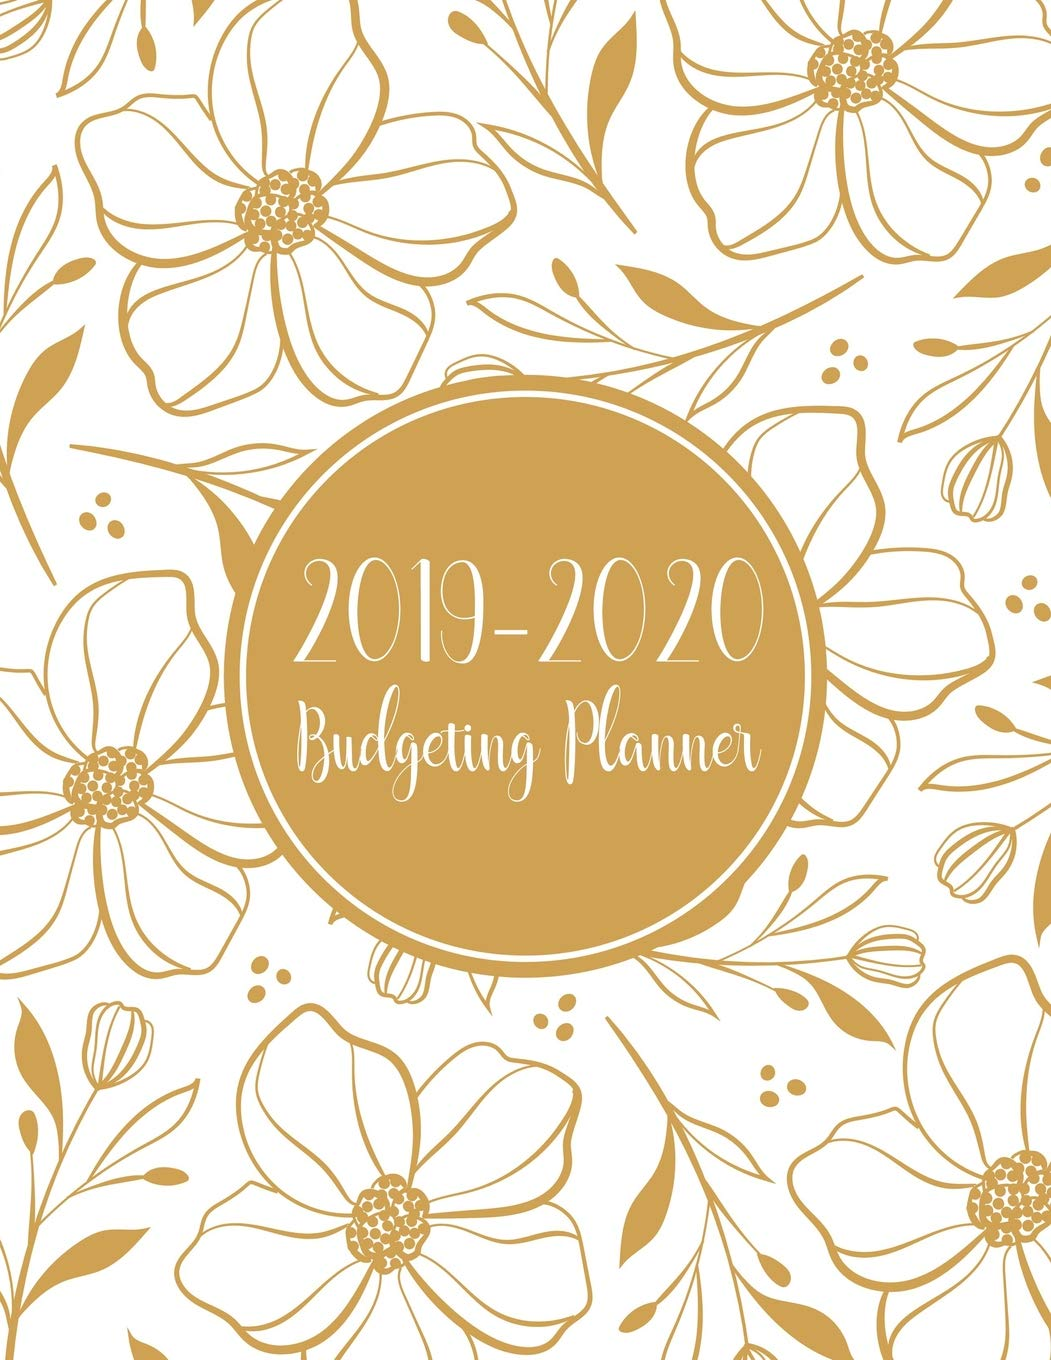 Budgeting Planner 2019 Daily Weekly /& Monthly Calendar Expense Tracker Organizer For Budget Planner And Financial Planner Workbook Marble Gold Cover Bill Tracker,Expense Tracker,Home Budget book // Extra Large